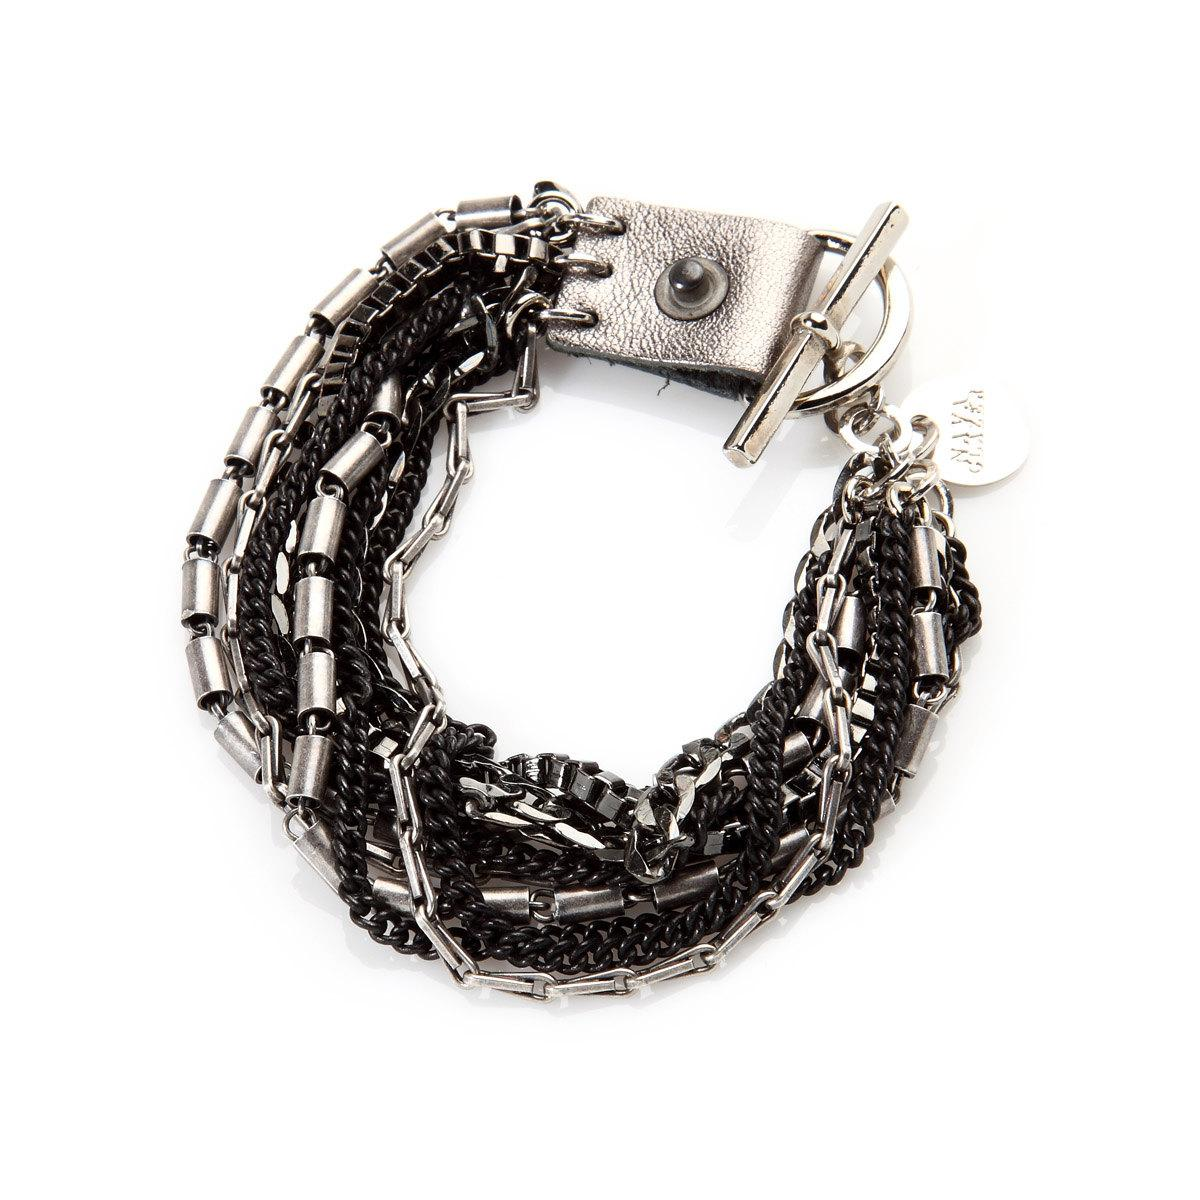 Bracelet in Silver and Gun Metal Chains and Leather by NavaGlazer